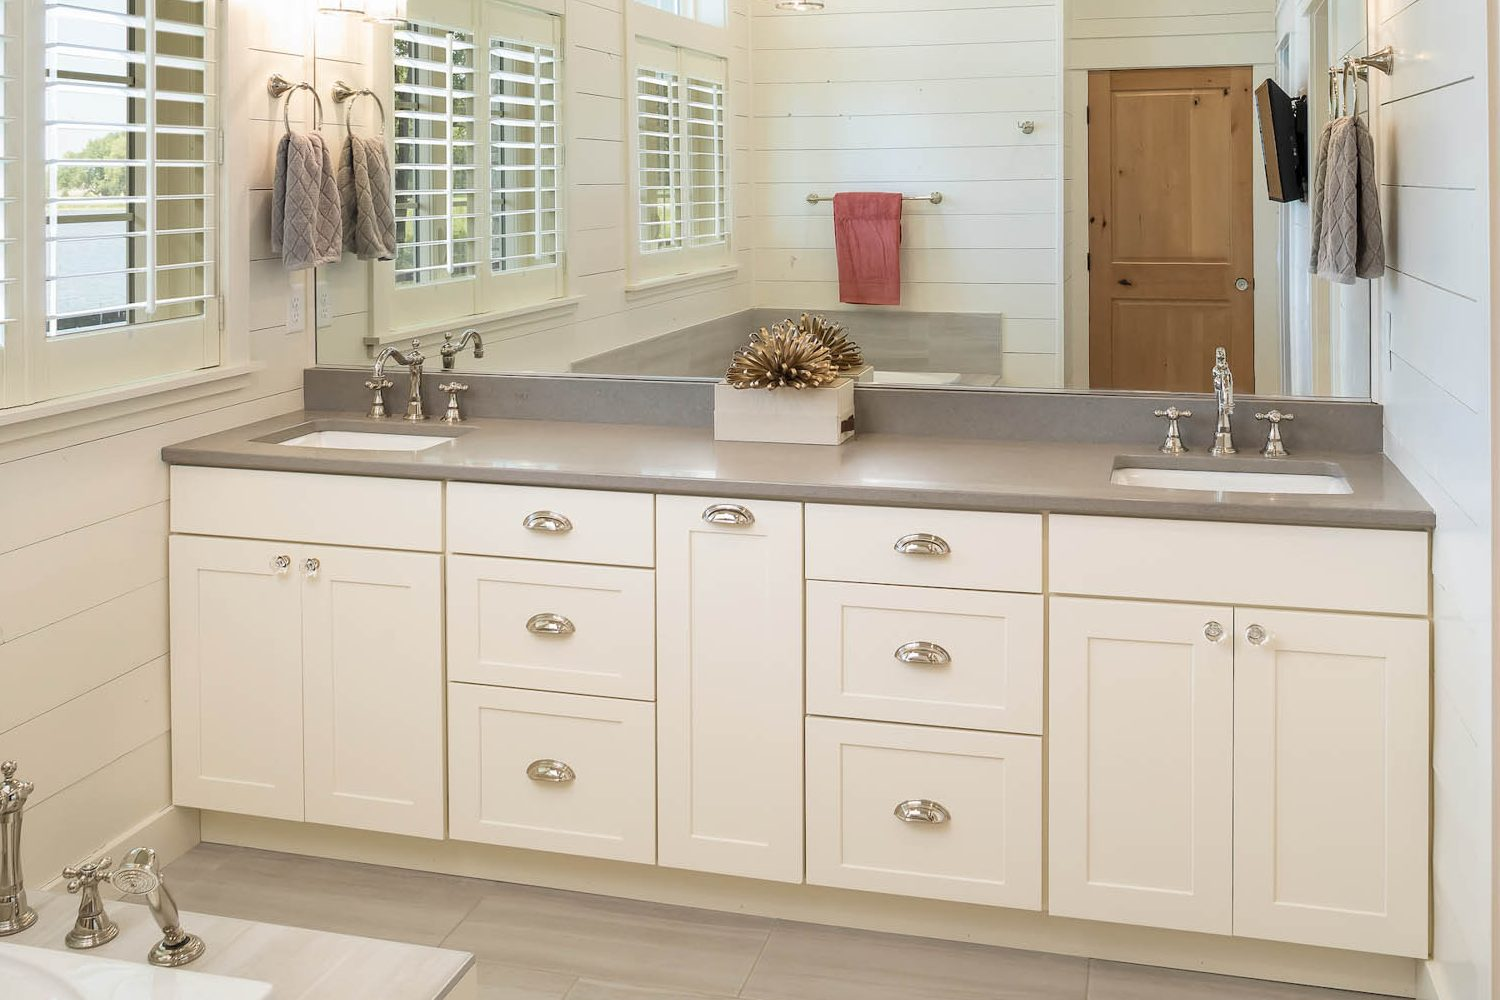 Painted master bathroom vanity in Soft Cream